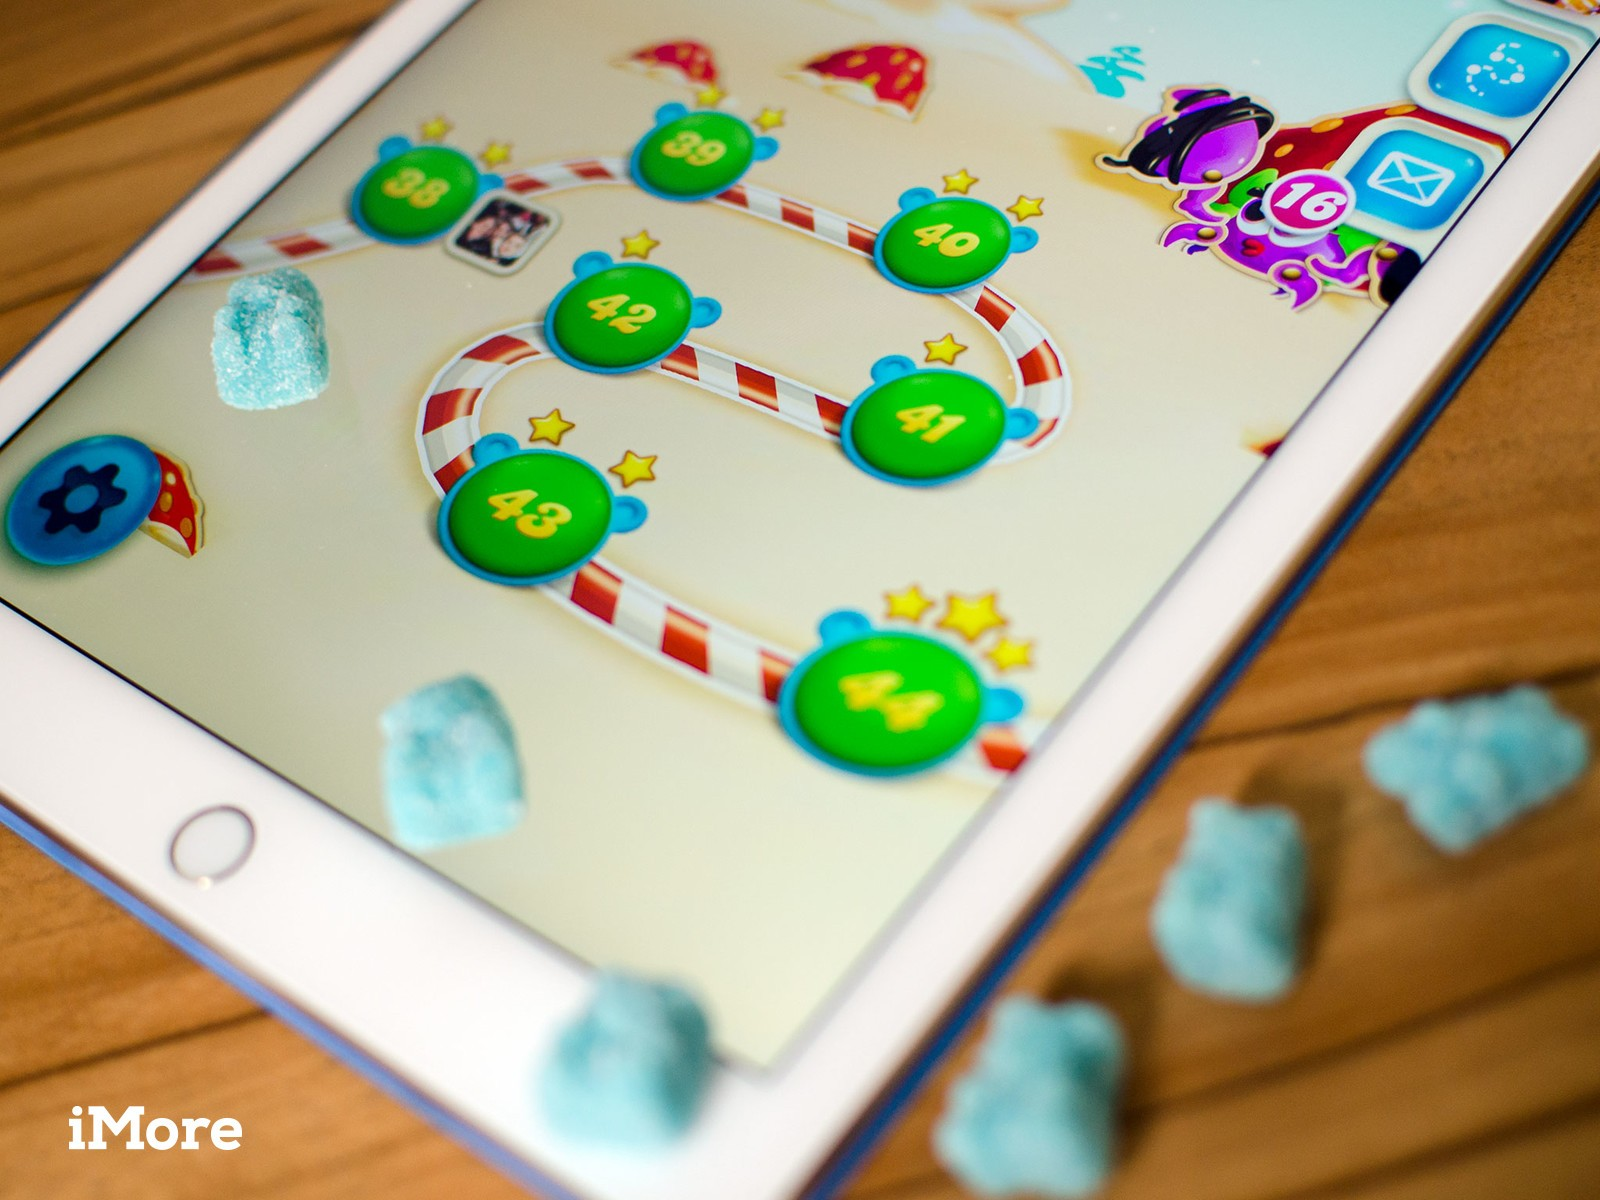 Candy Crush Soda Saga: How to beat levels 40, 52, 60, 70, and 72